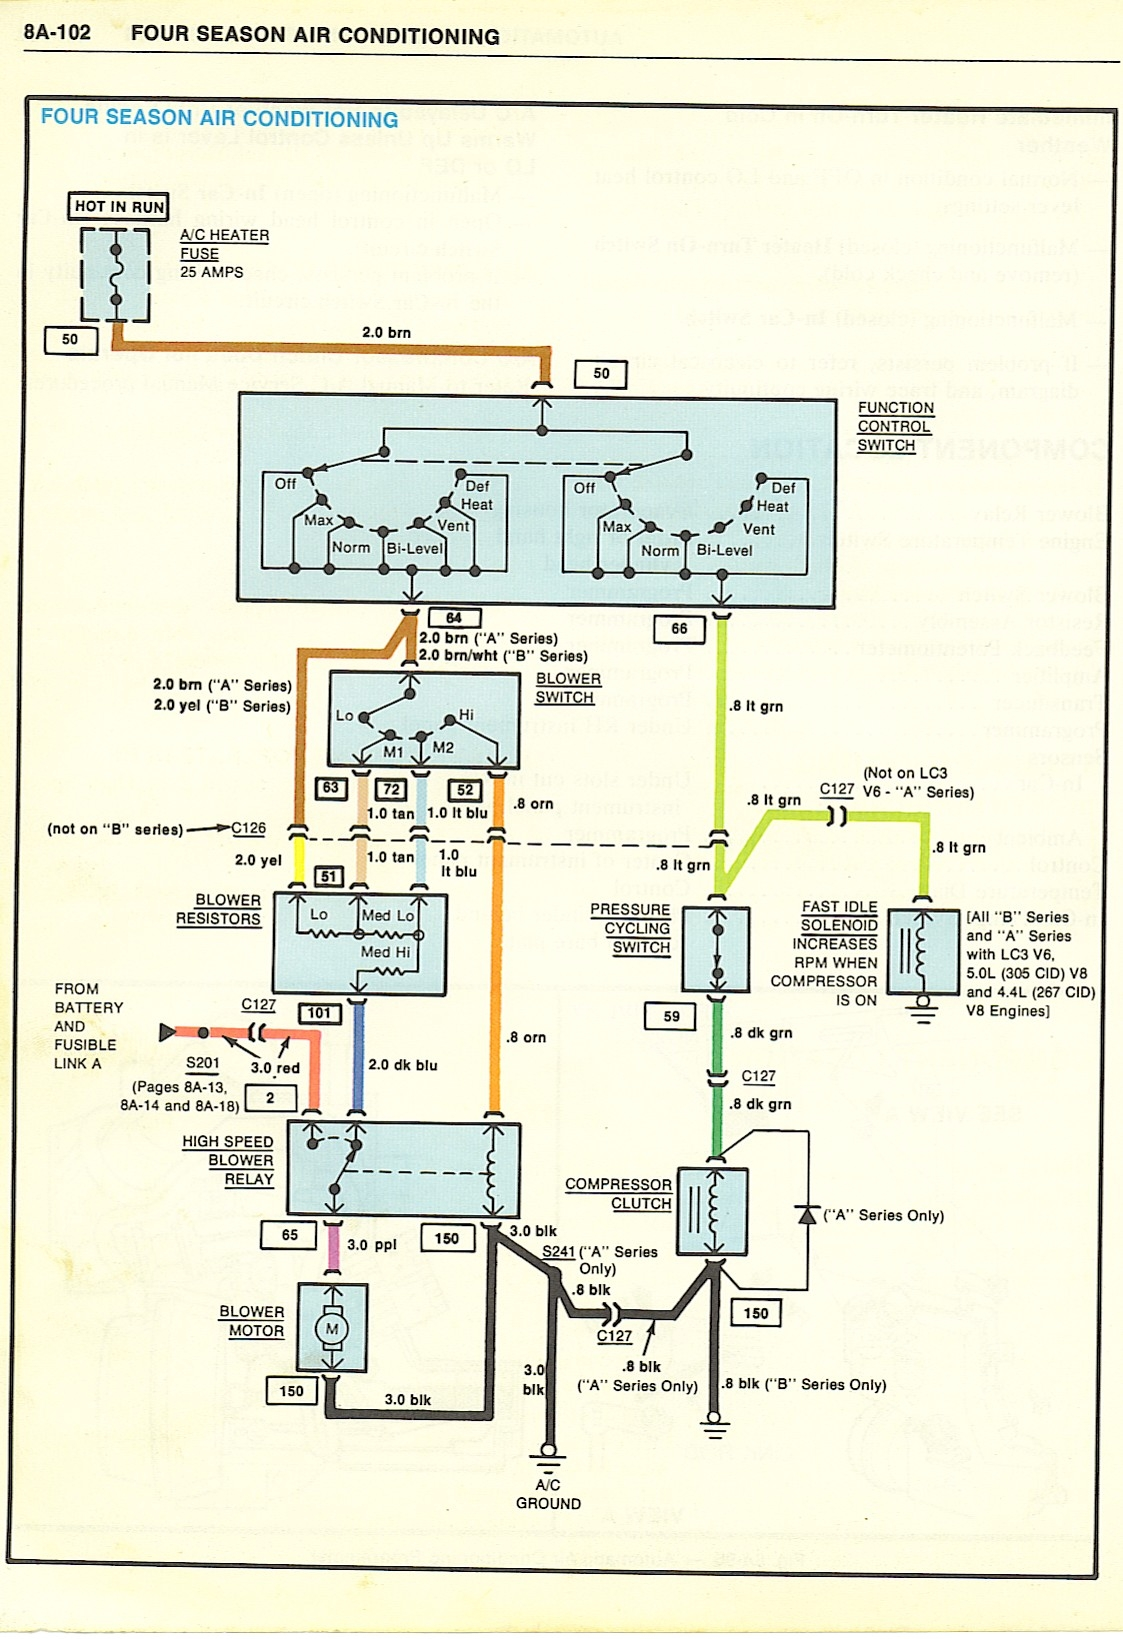 Chevy diagrams 71 Chevelle Pro Street 1968 Chevy Chevelle Wiring Diagram 70 Chevelle 396 Motor Fuse Box Wiring on 71 chevelle door diagram wiring schematic